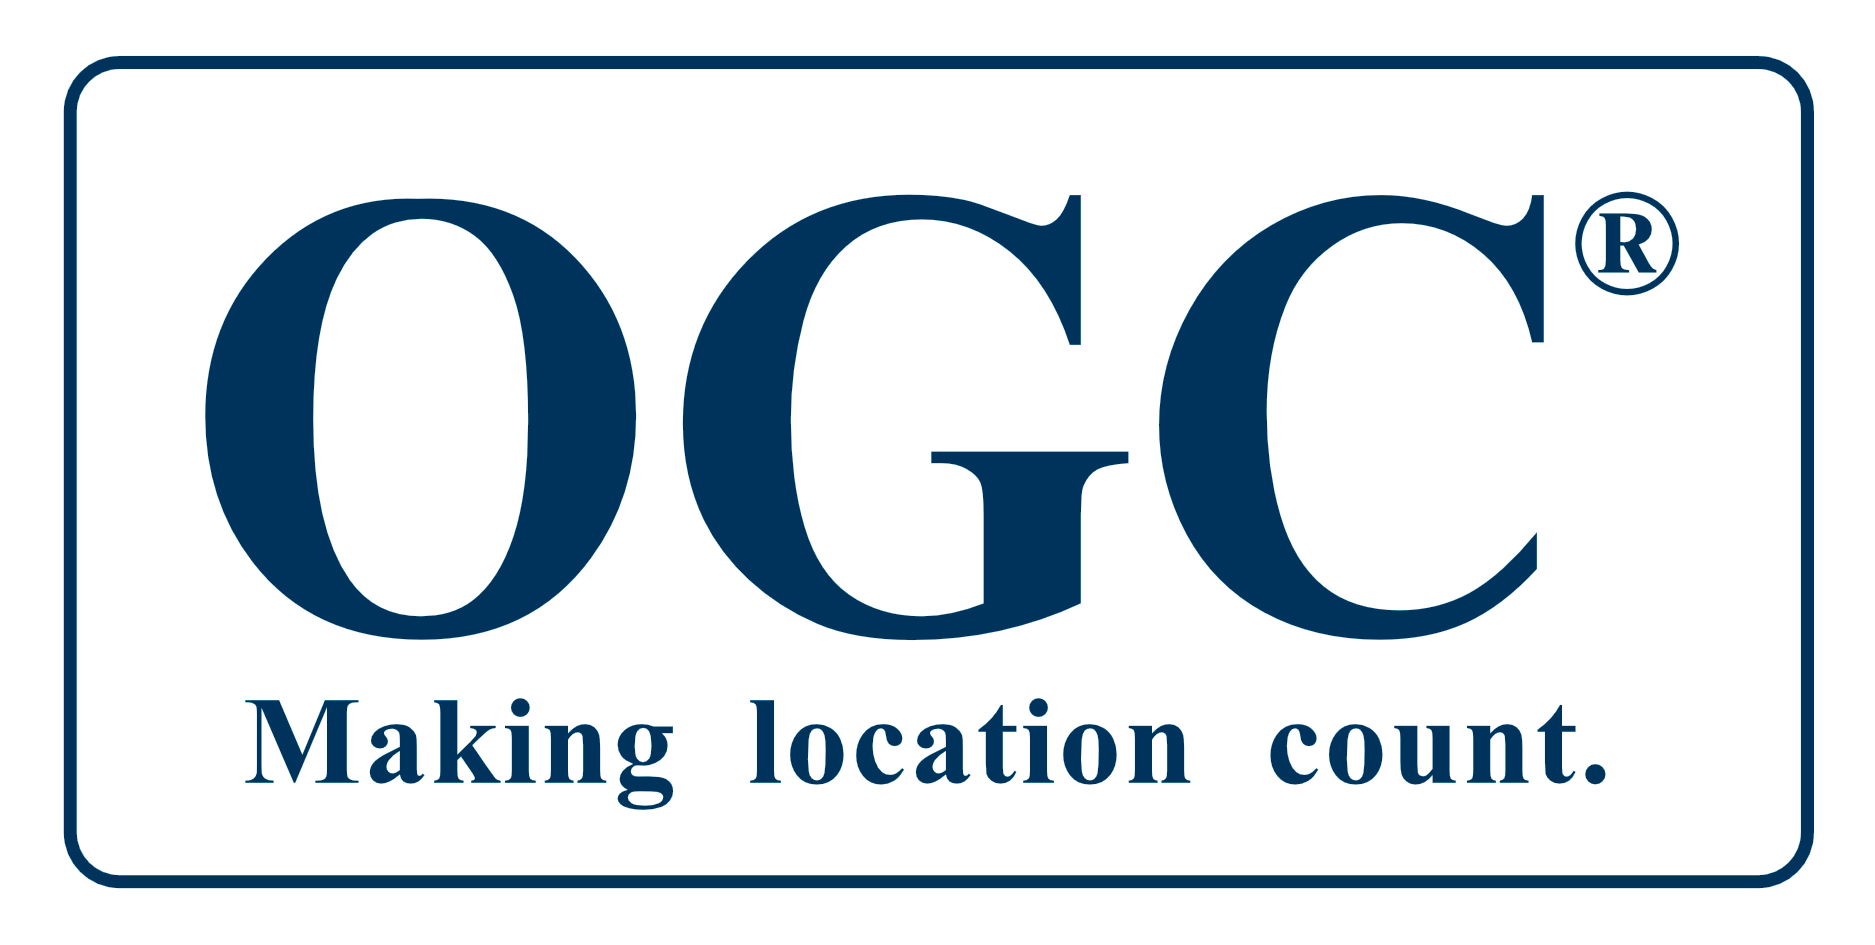 Members of Open Geospatial Consortium (OGC) request comments on the draft charter for an OGC Land Administration Domain Working Group (DWG).